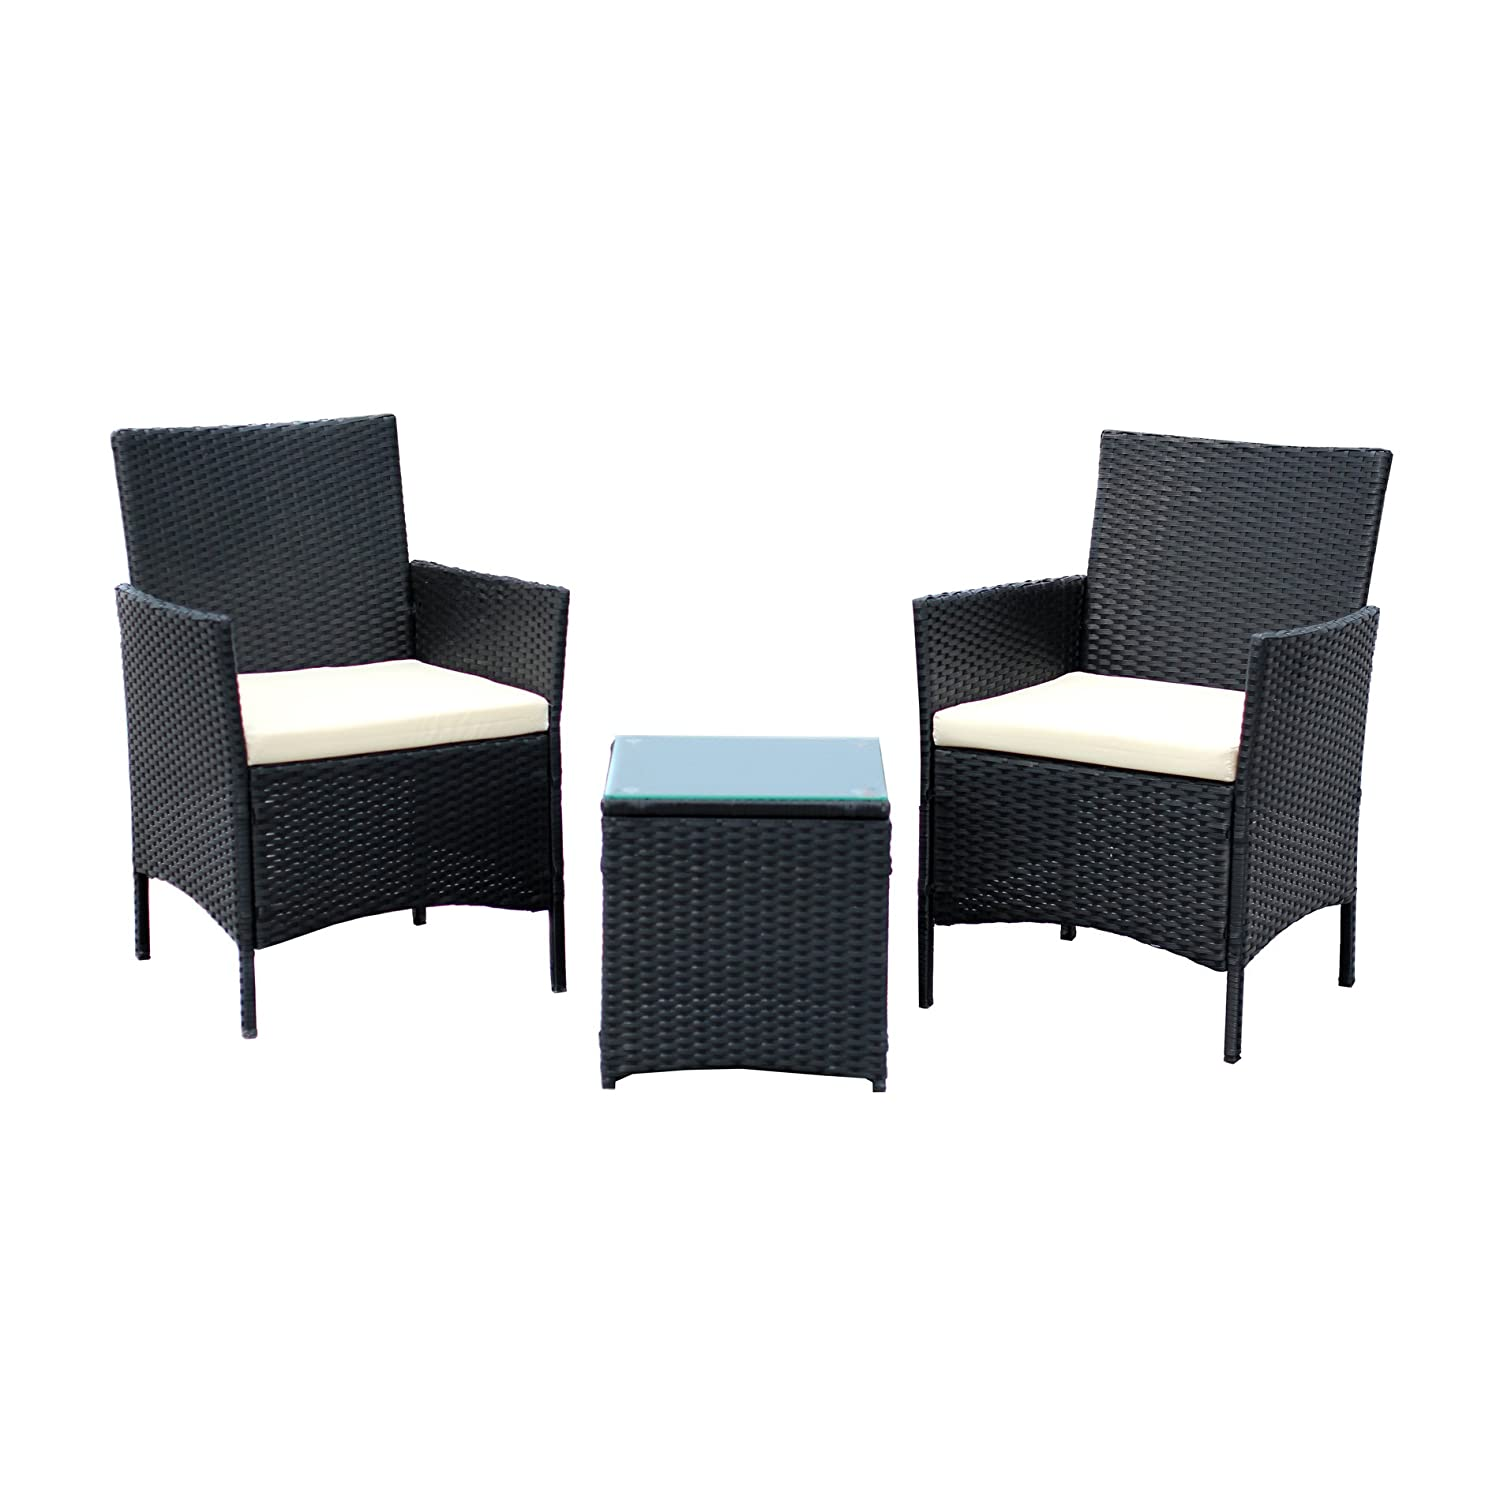 Amazon EBS 3 Piece Patio Rattan Furniture Set Clearance